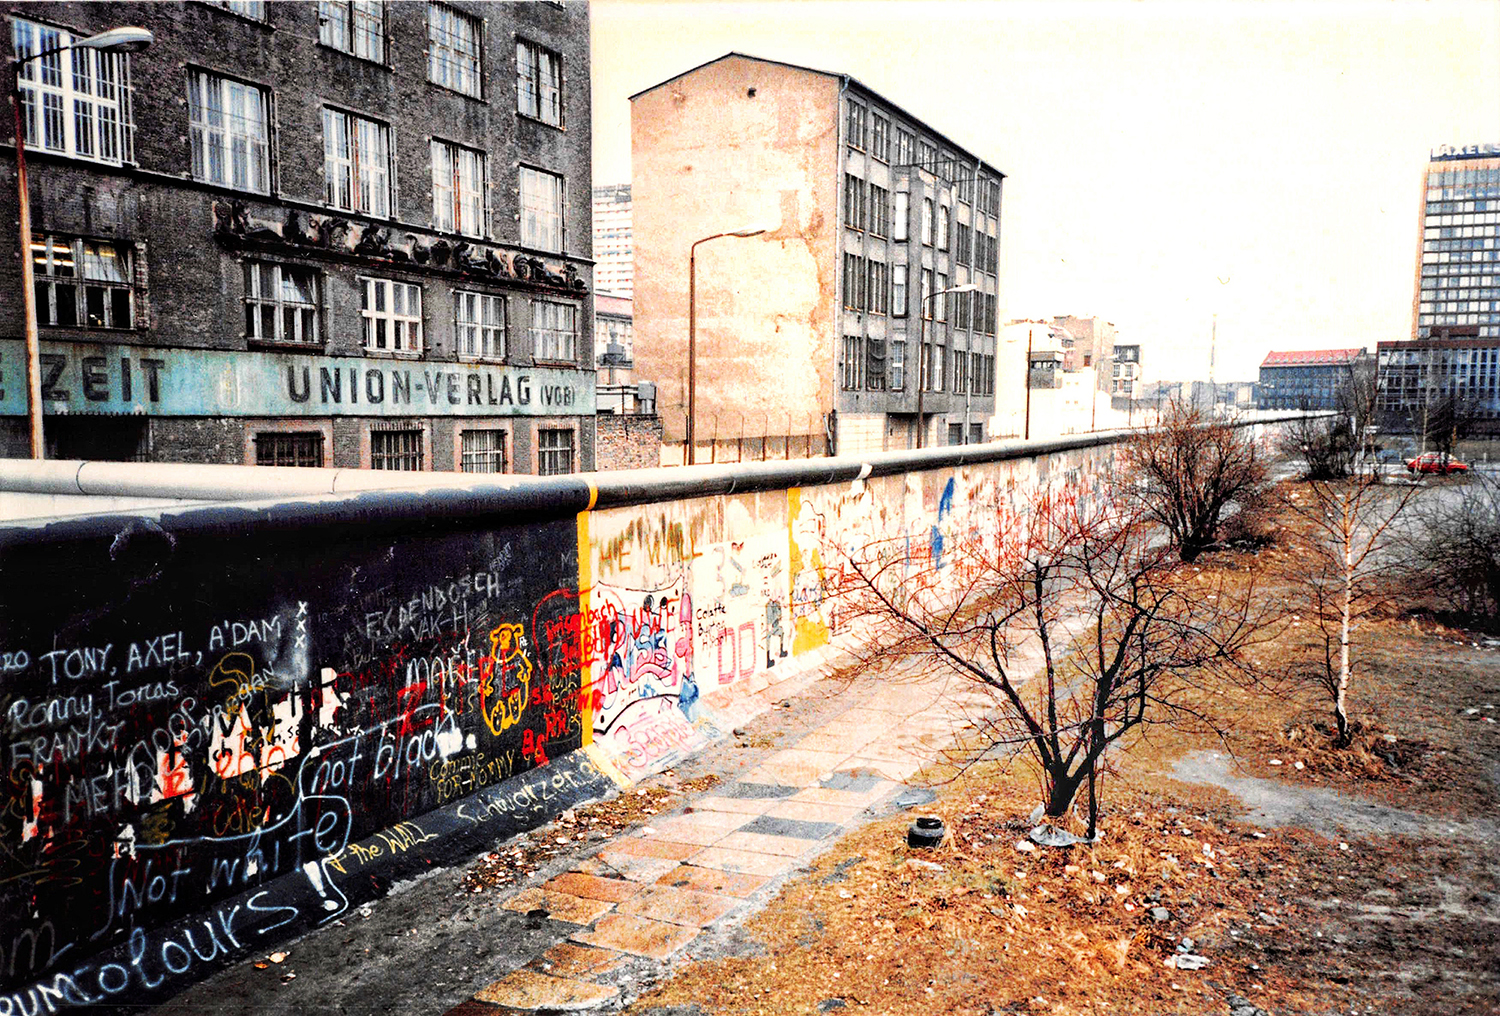 A photo of the Berlin Wall, painted with graffiti.